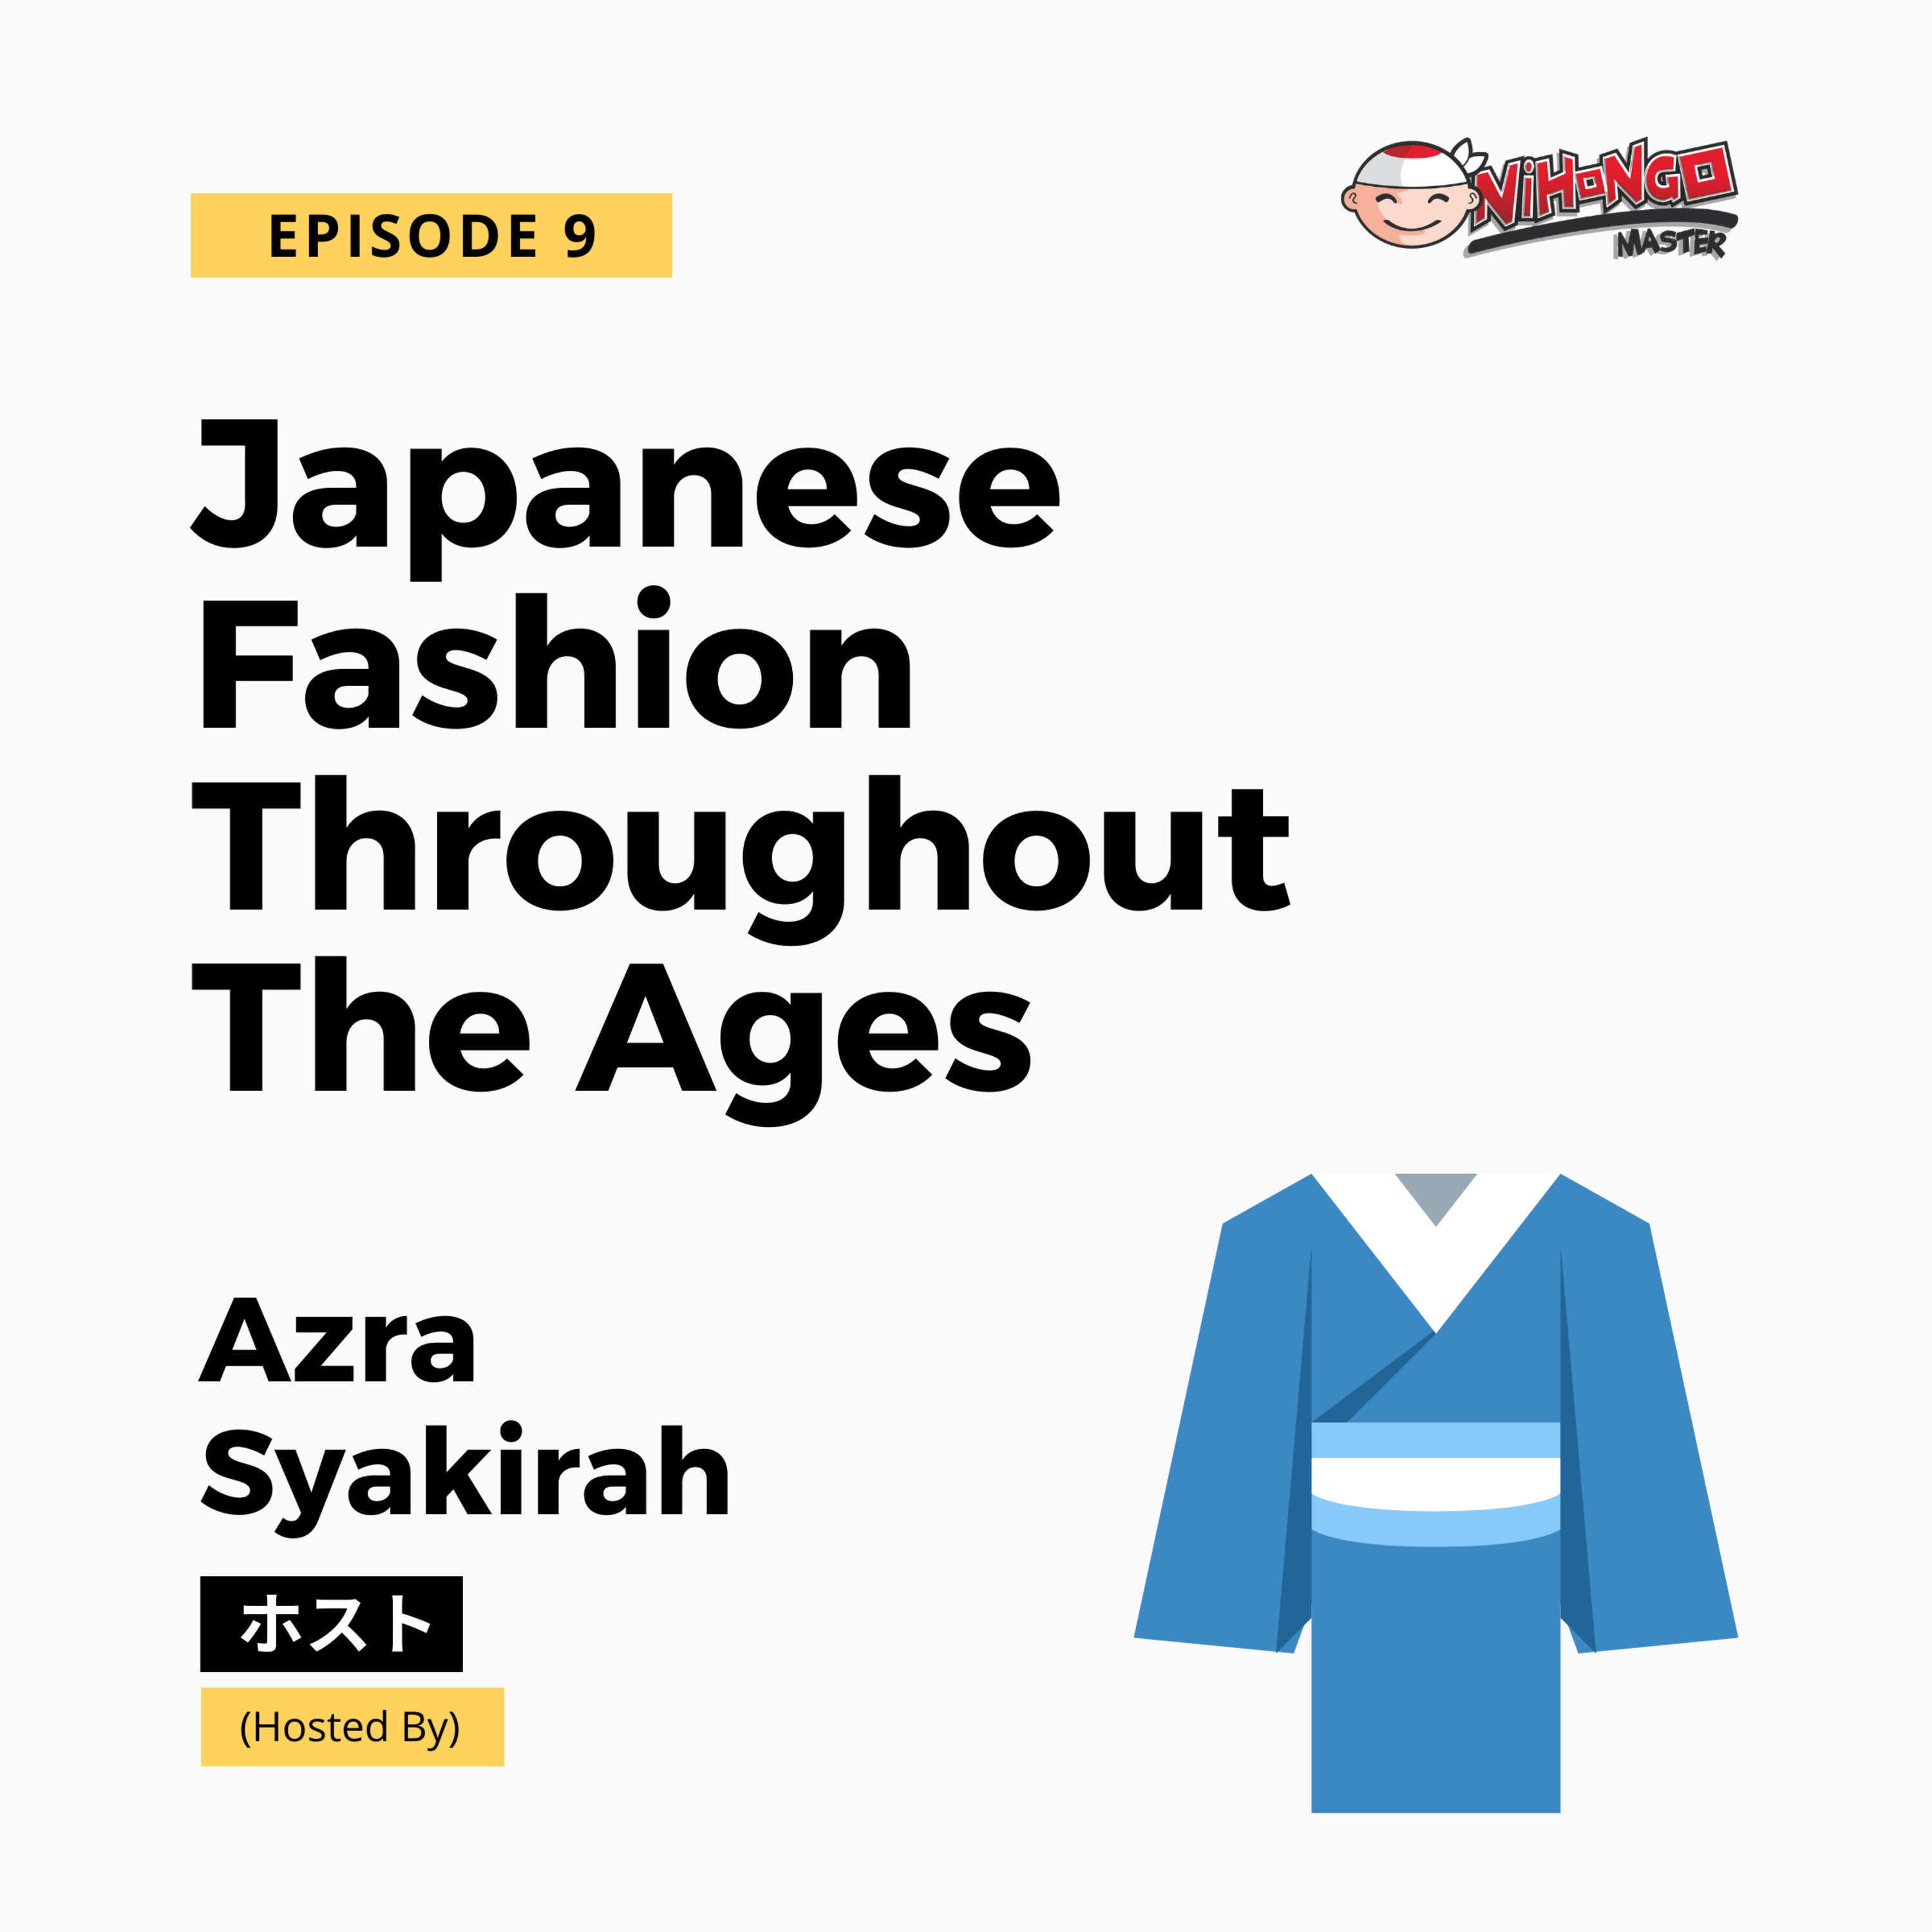 S1E9: Japanese Fashion Throughout The Ages